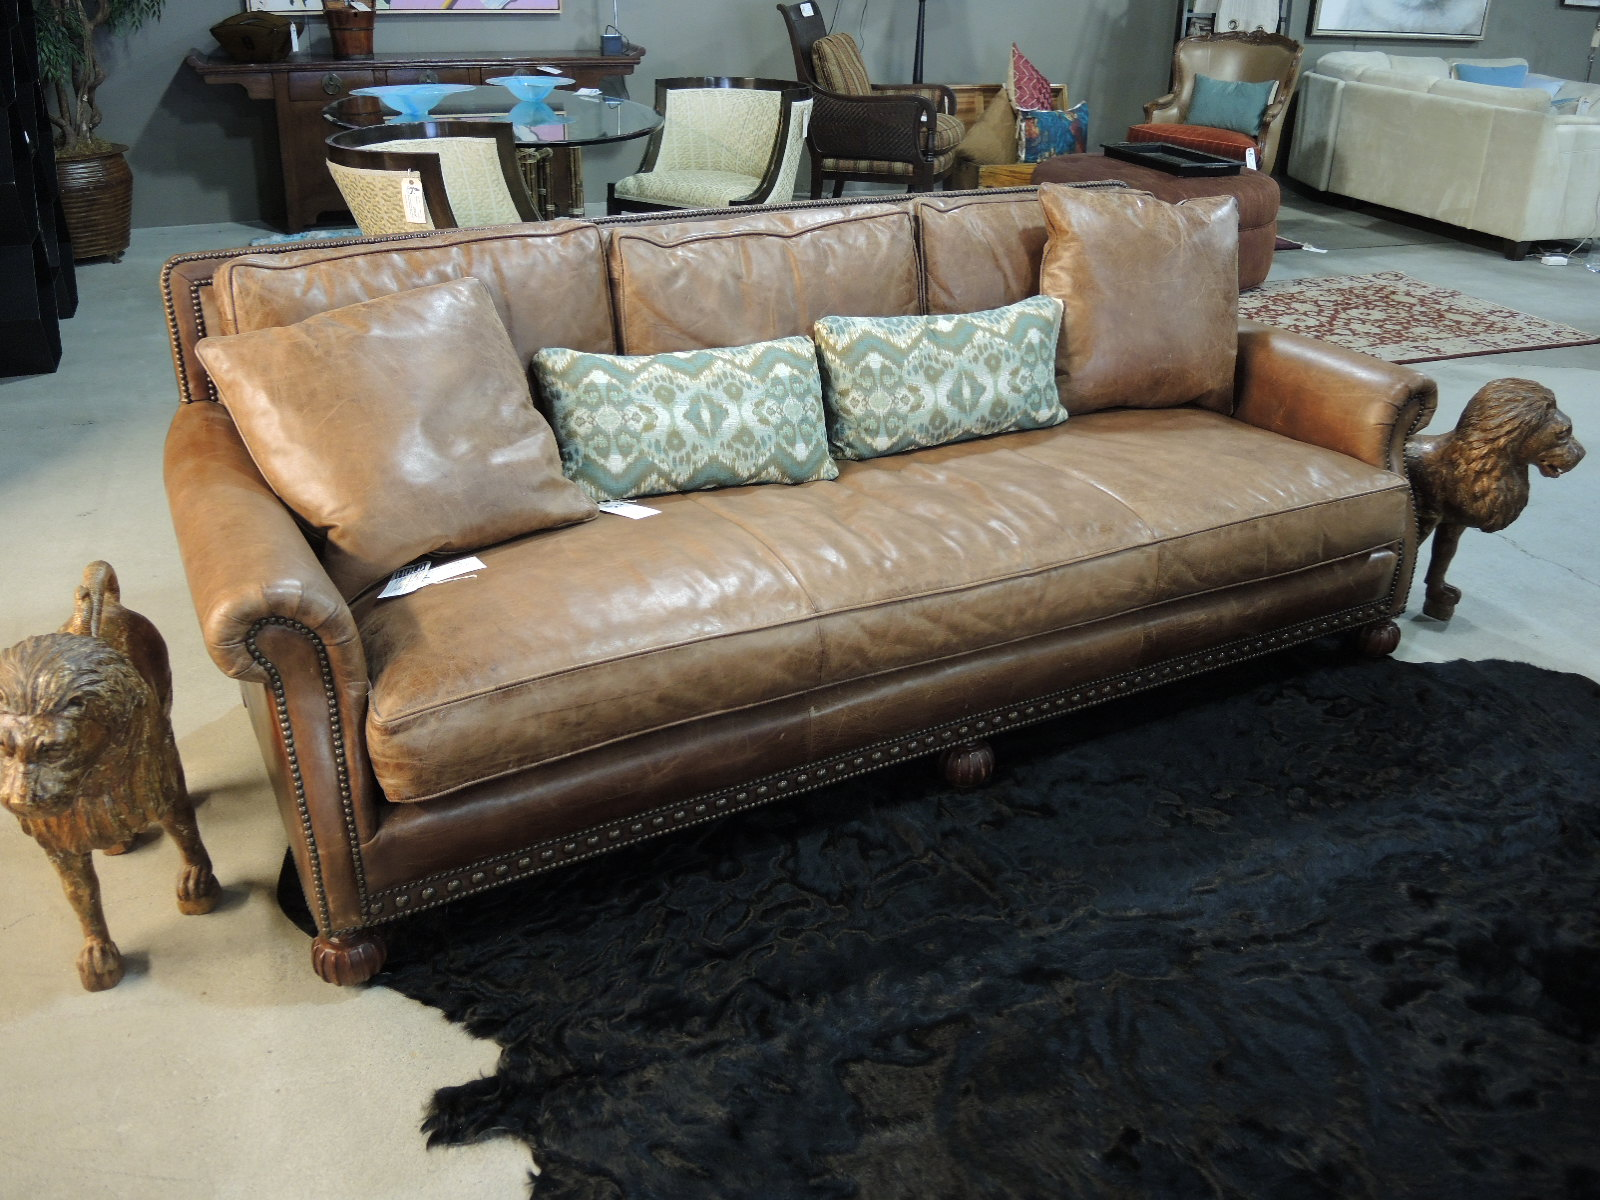 lovingly distressed brown leather upholsters this luxuriously exceptional u0027aran islesu0027 sofa from ralph lauren home features include a single downblend